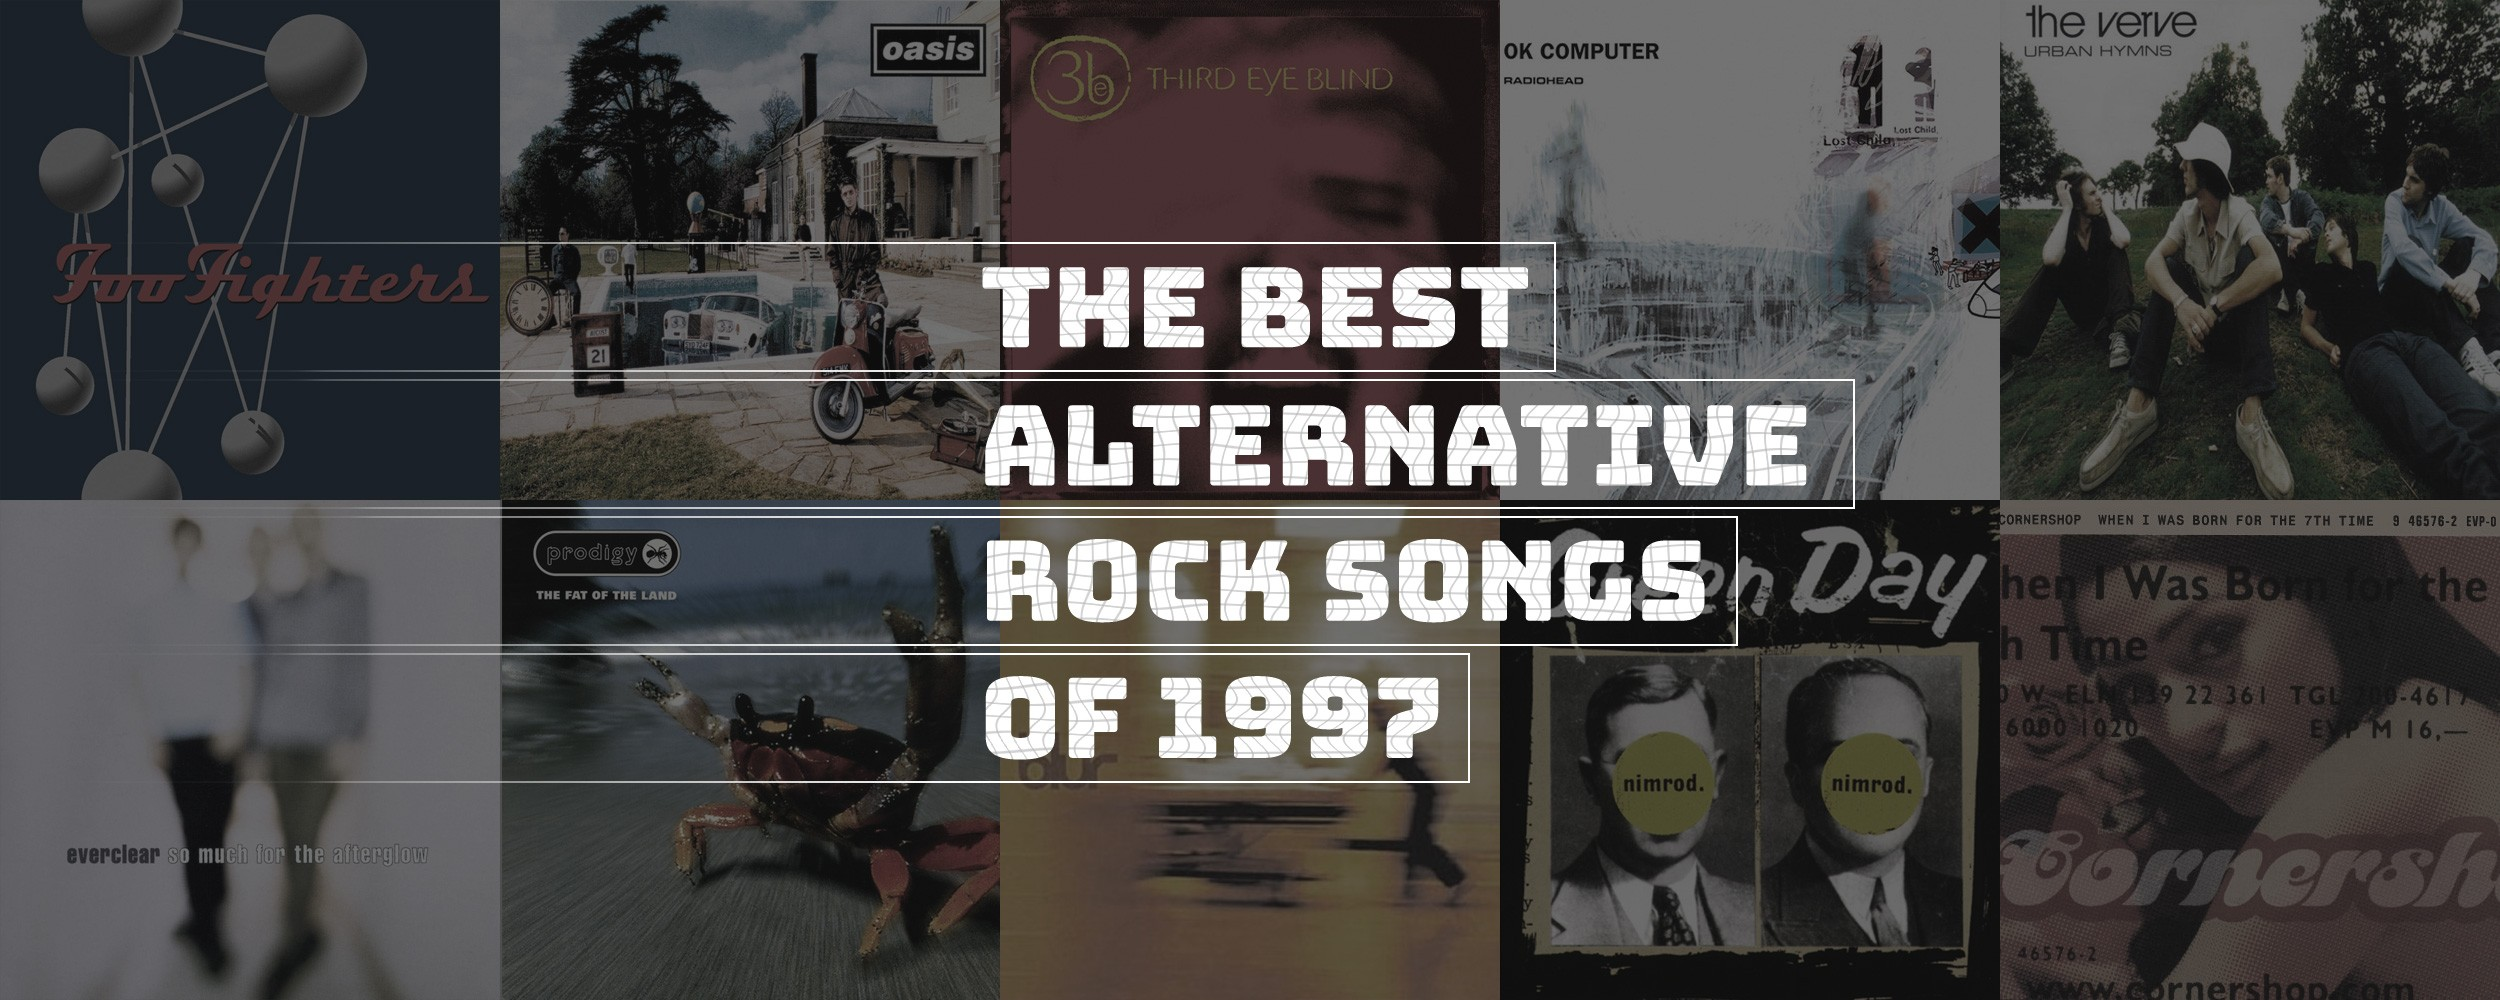 79 Best Alternative Rock Songs of 1997 | SPIN